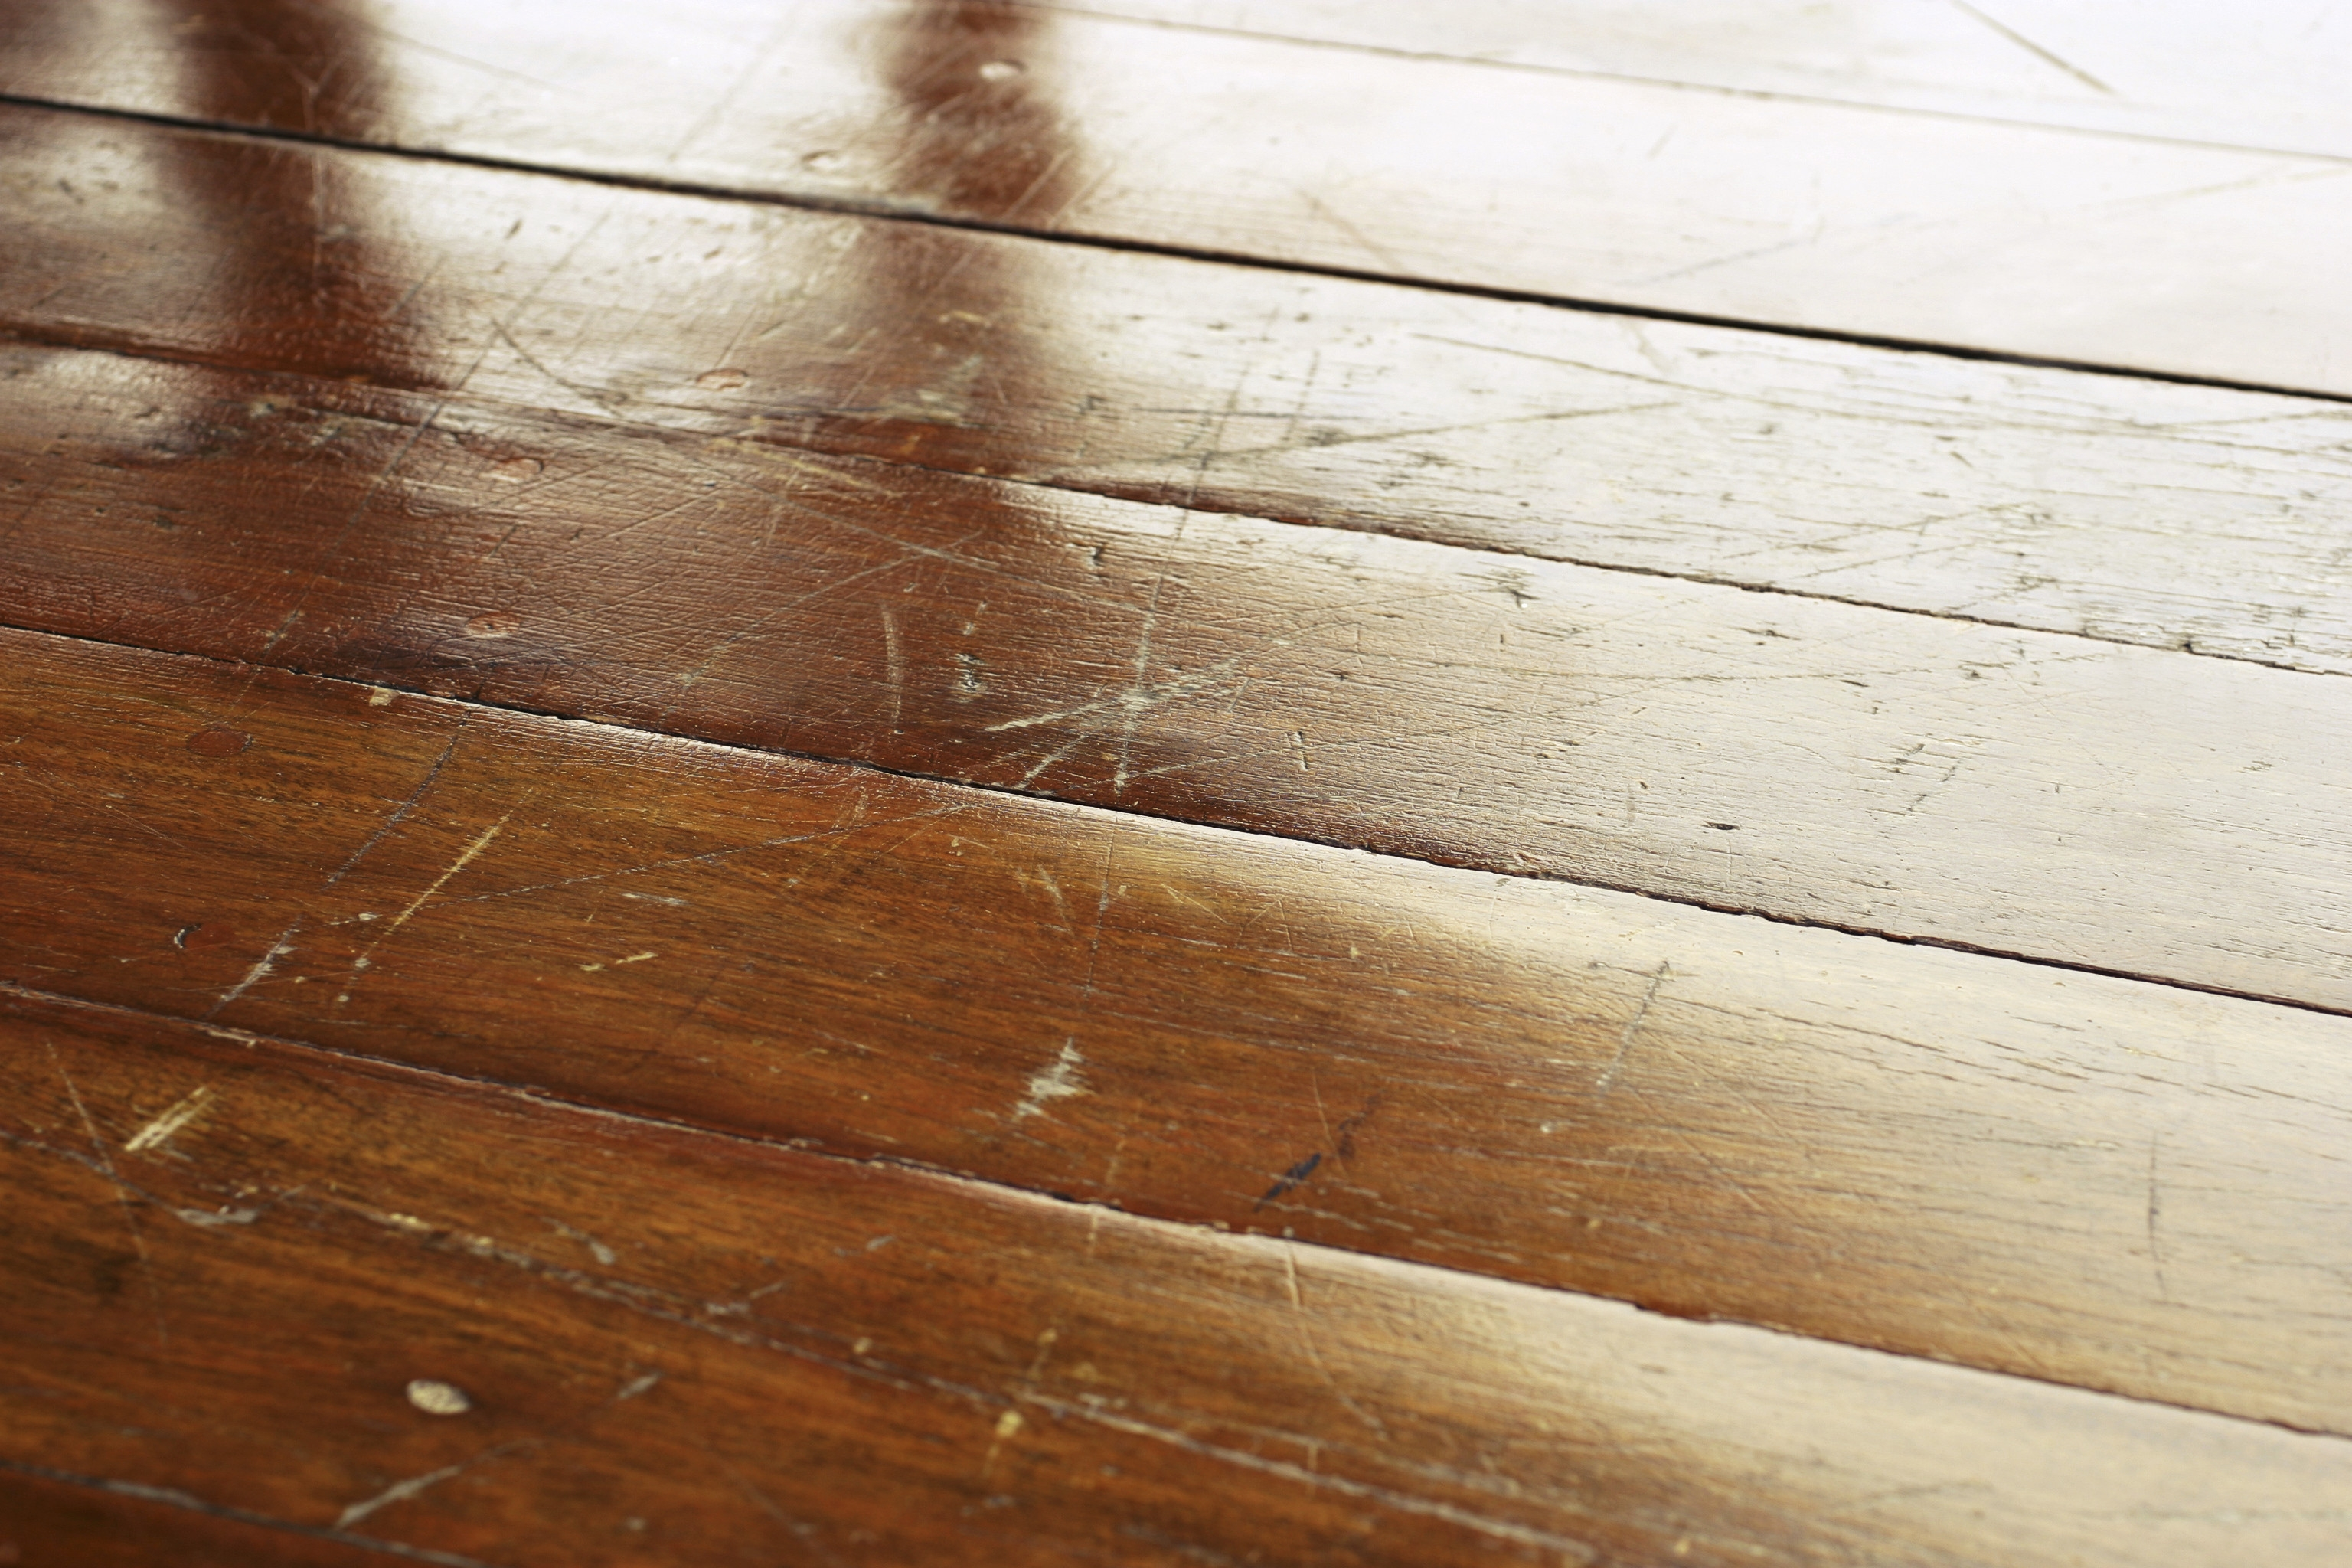 Repairing Worn Wood Floors9 things youre doing to ruin your hardwood floors without even